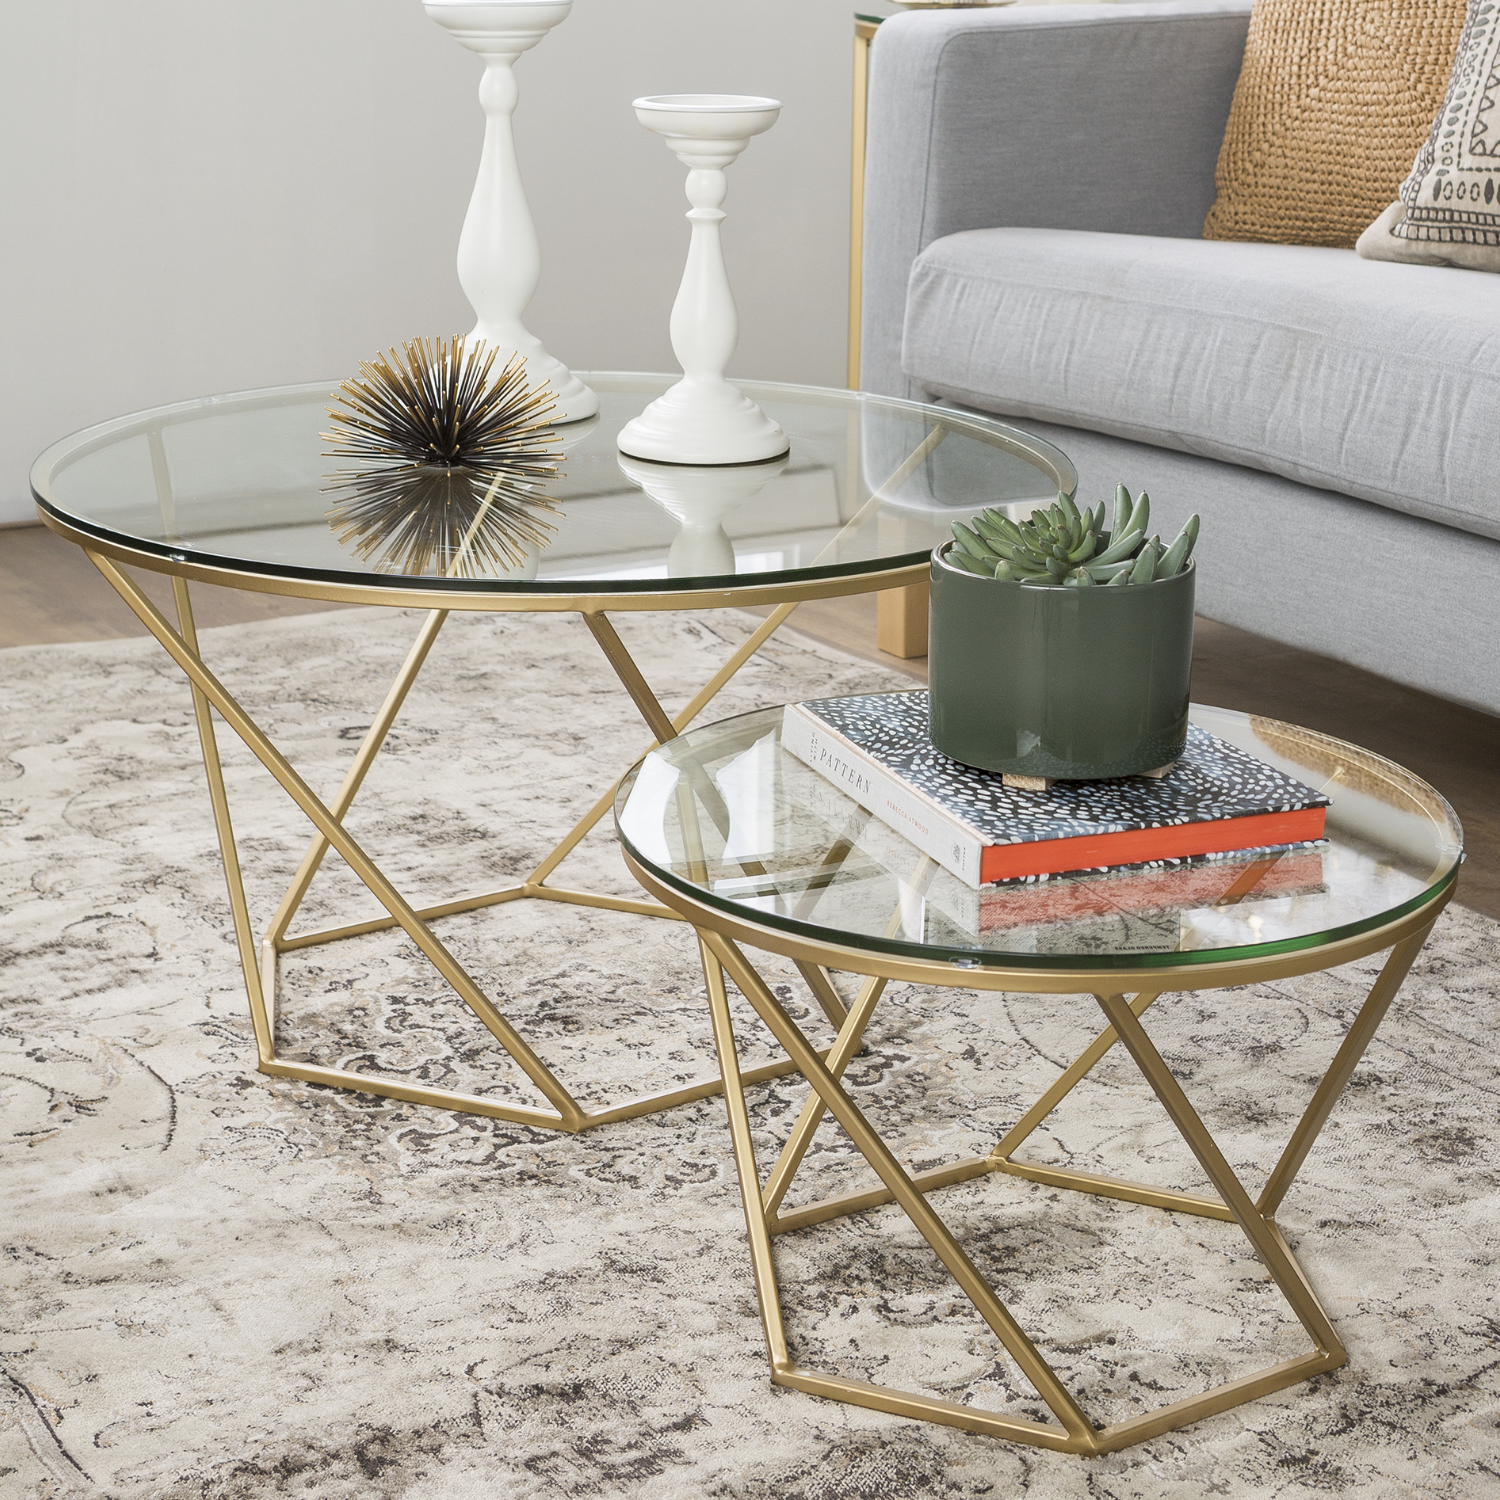 - Gold & Glass Coffee Tables - Set Of 2 - Foster Furniture123